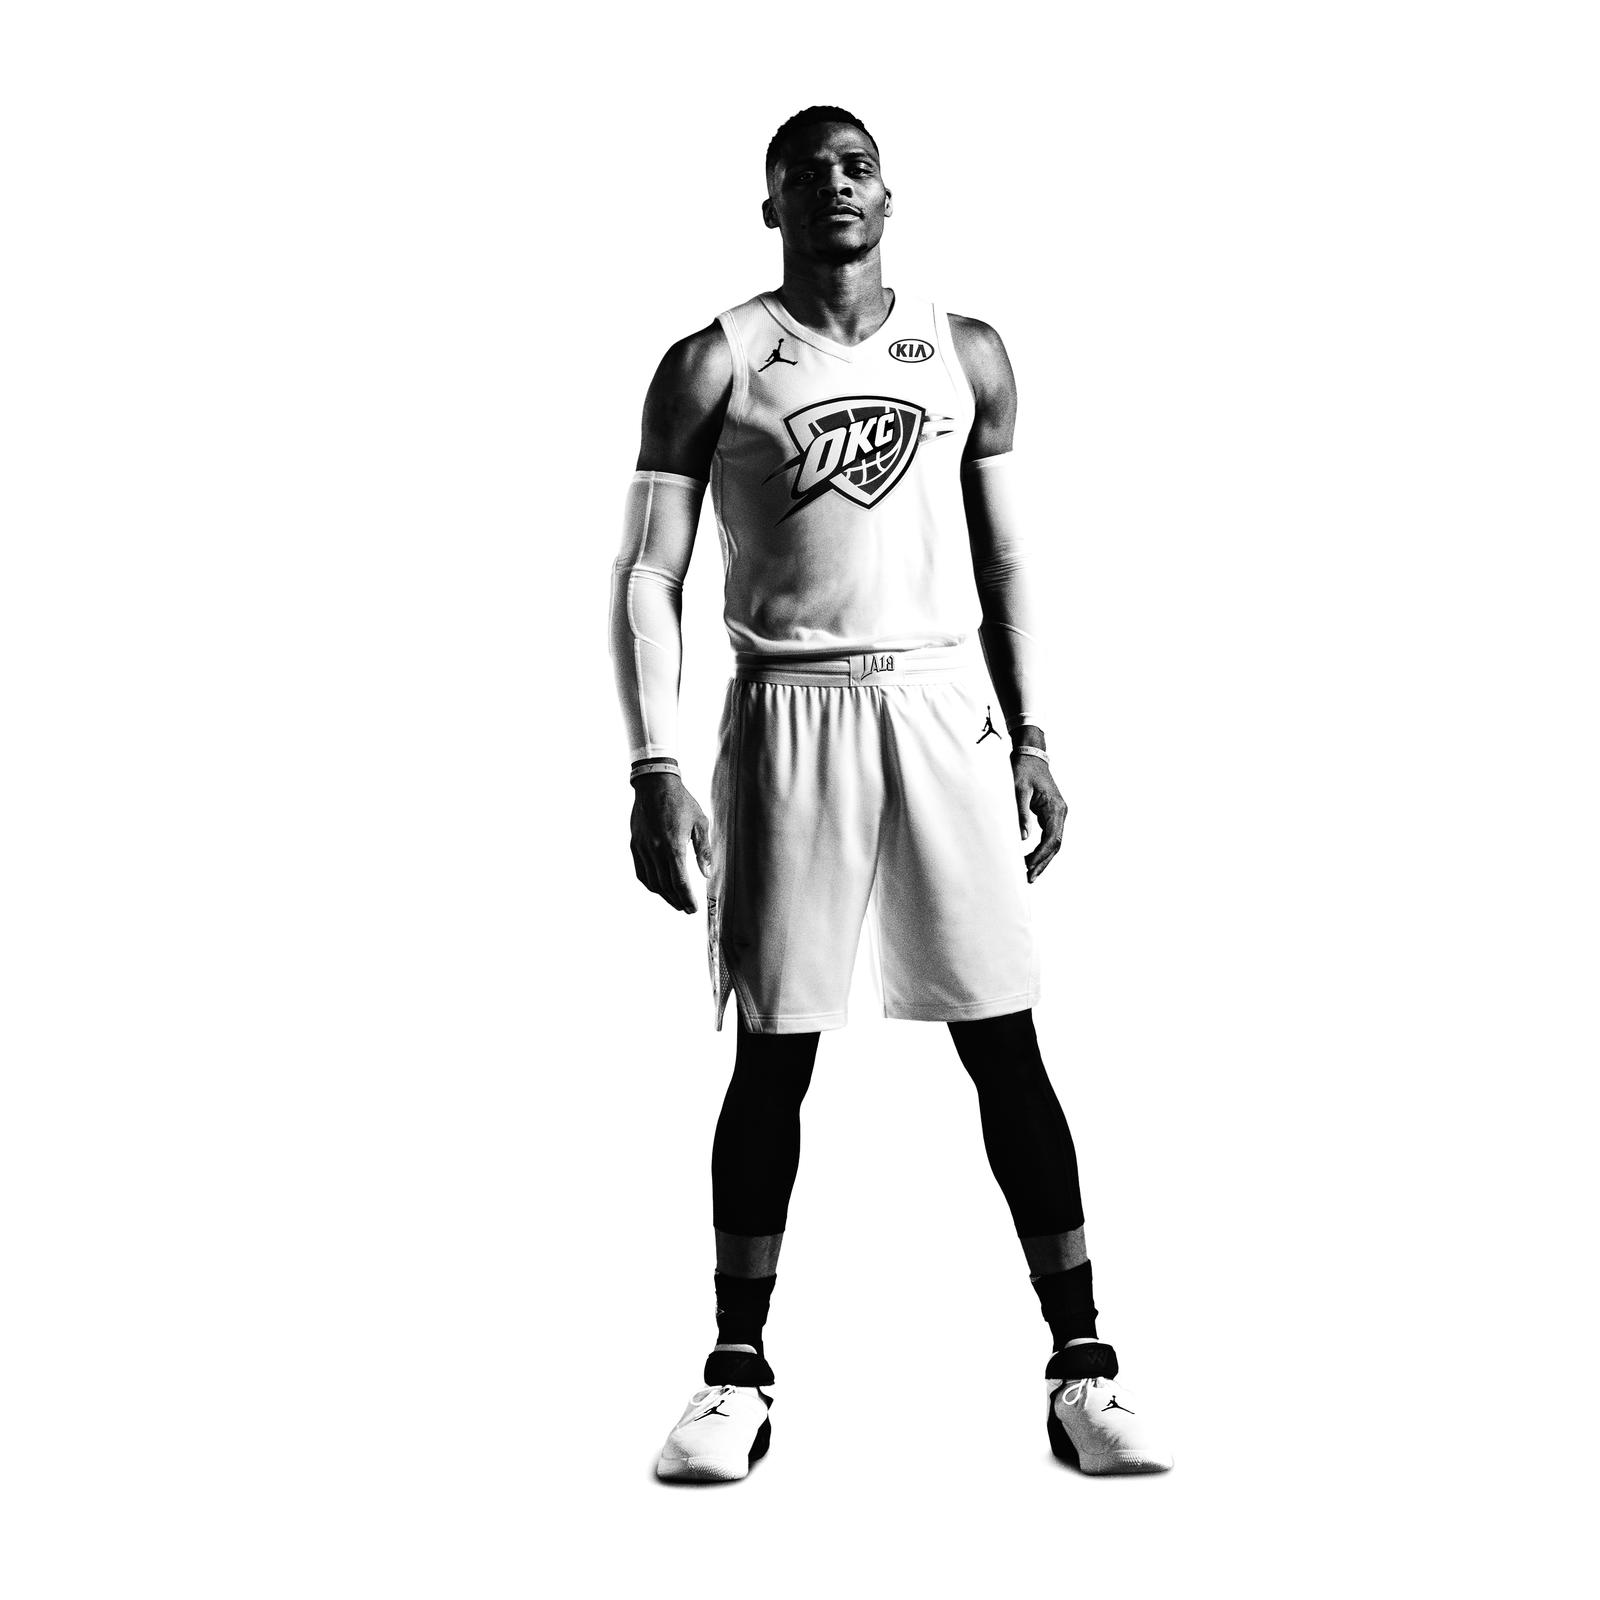 Introducing the First-Ever Jordan Brand NBA All-Star Edition Uniforms 36